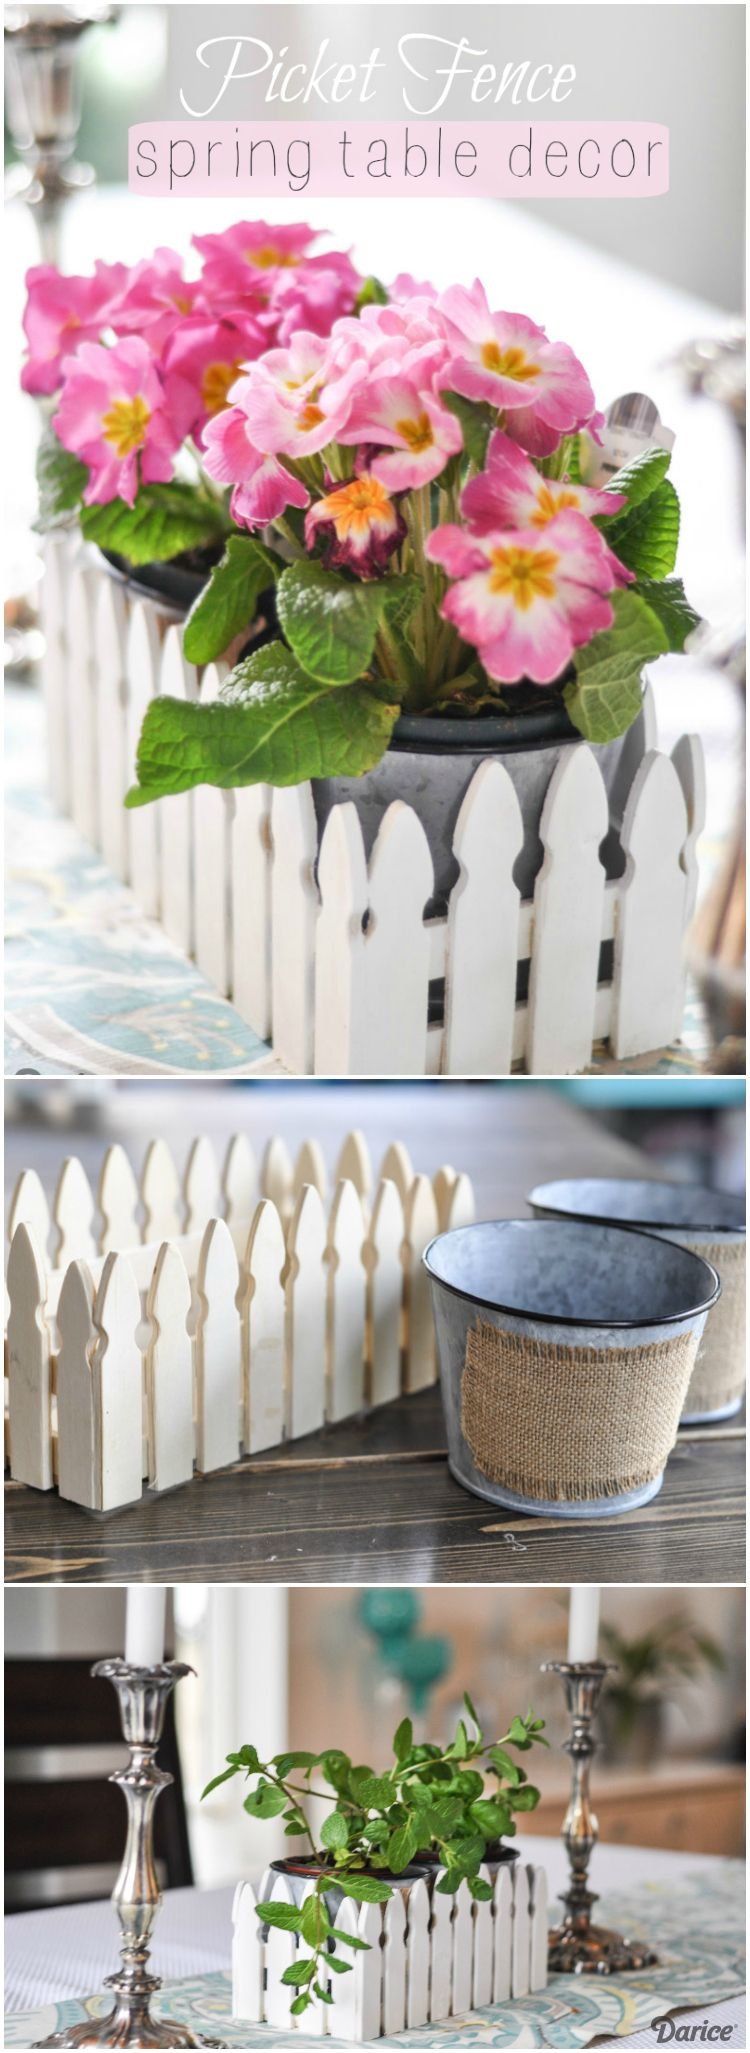 Transform our unfinished picket fence container into sweet spring table decor in no time. Create a darling centerpiece with just a few supplies!